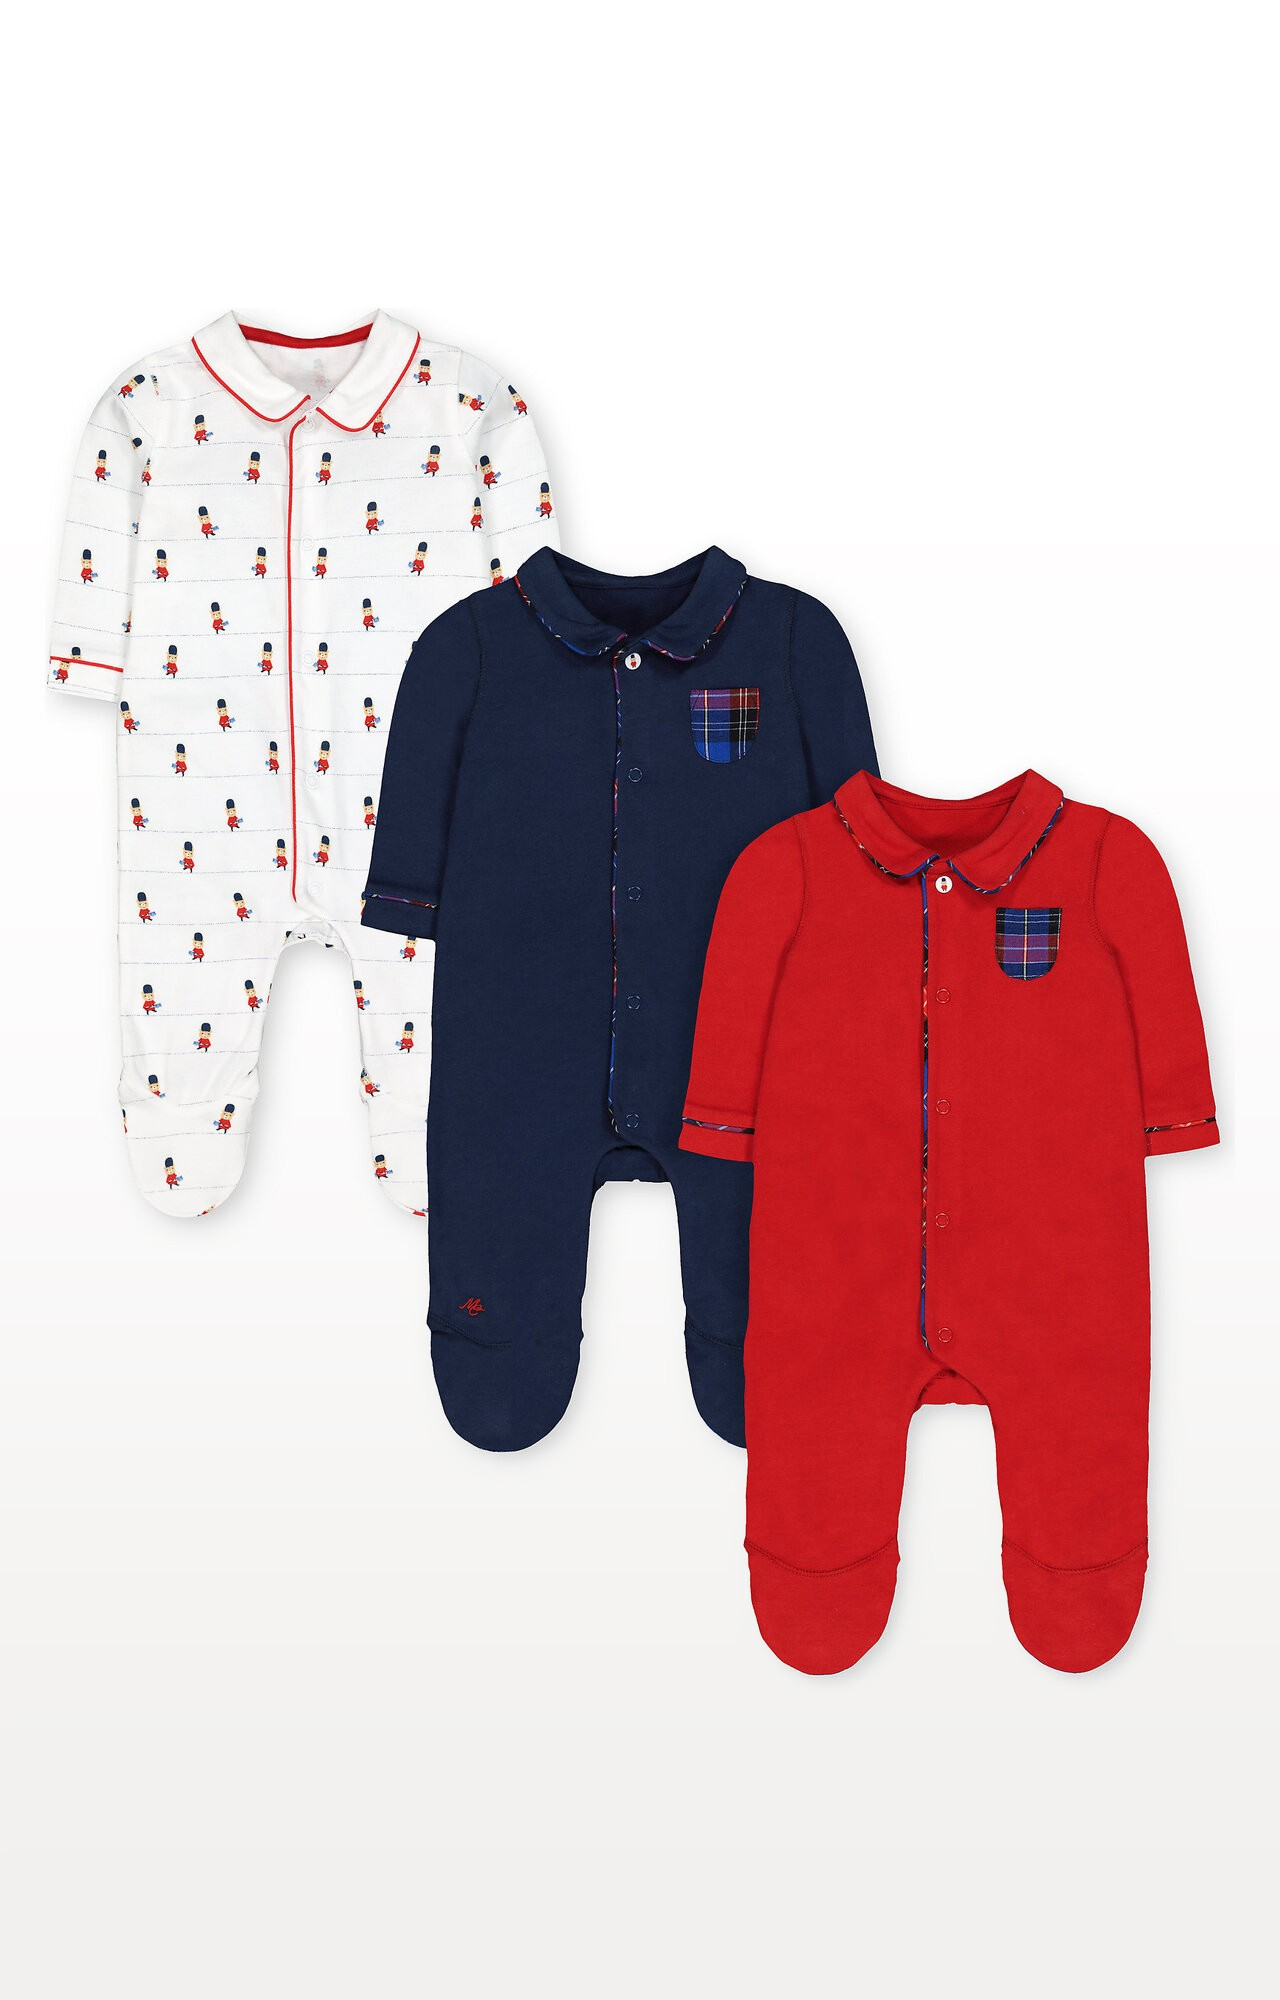 Mothercare | Bear Guards, Navy and Red Collared Sleepsuits - Pack of 3